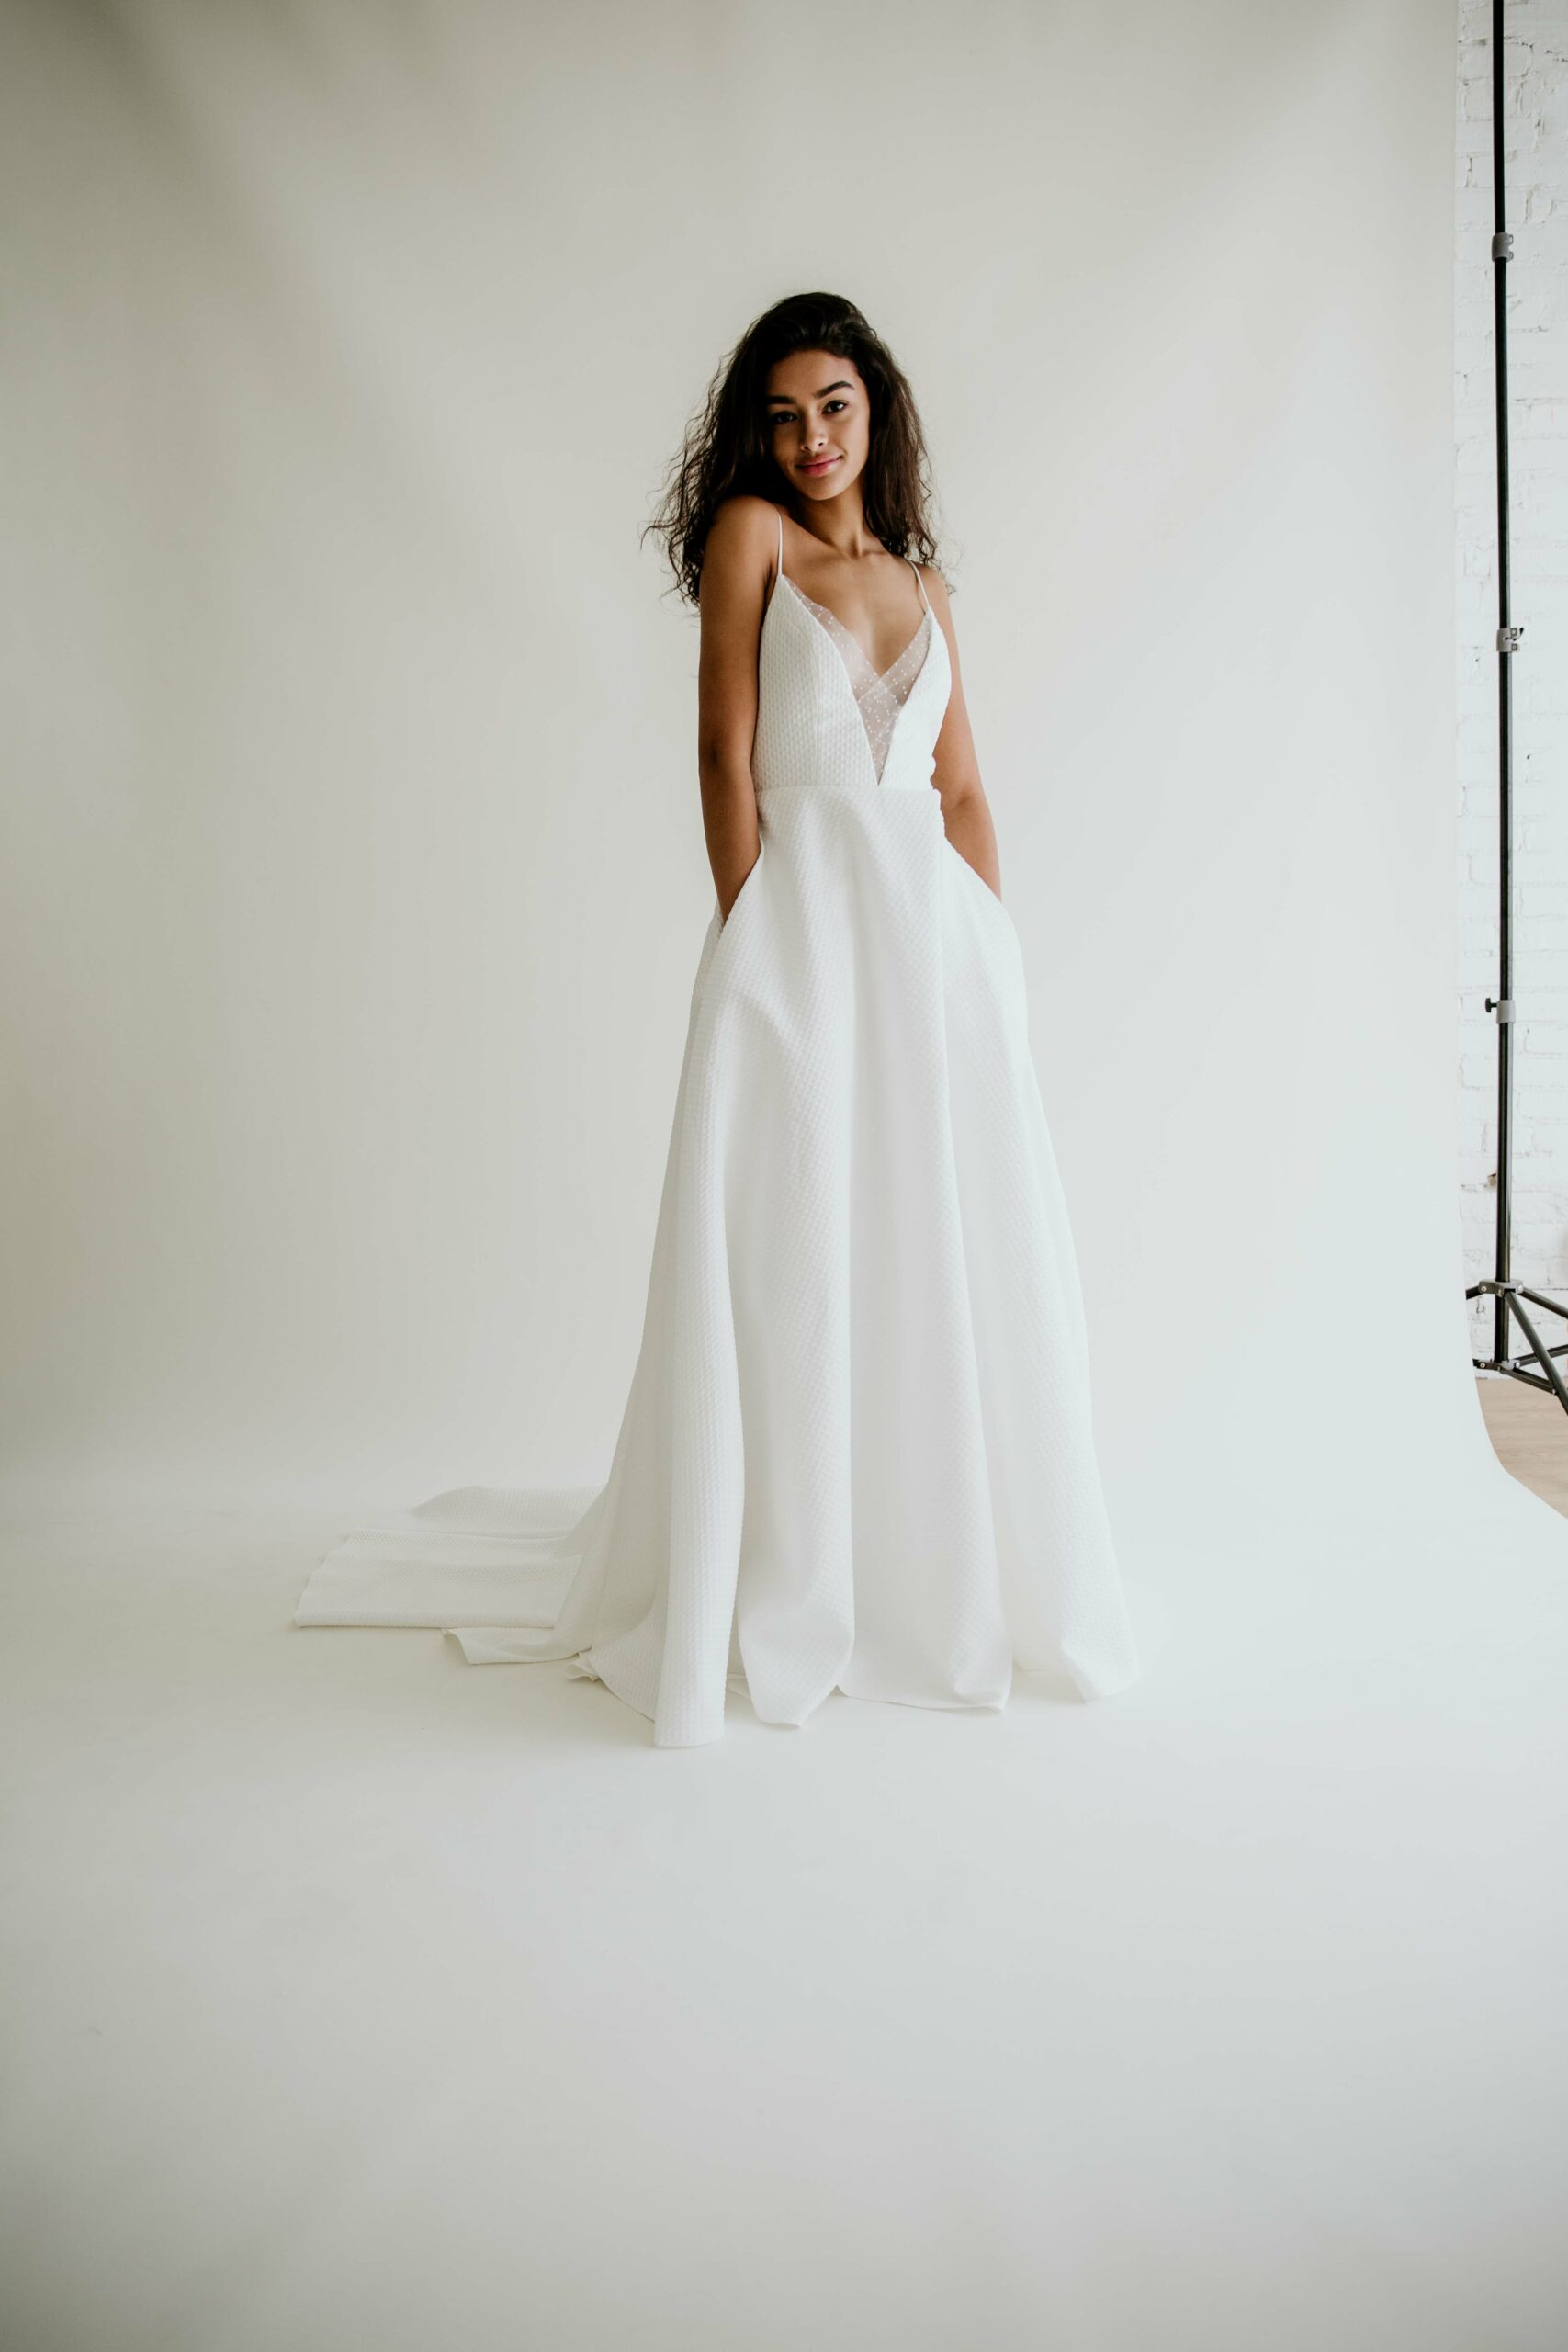 Millie by Anais Anette White Concepts Brautmode Aachen